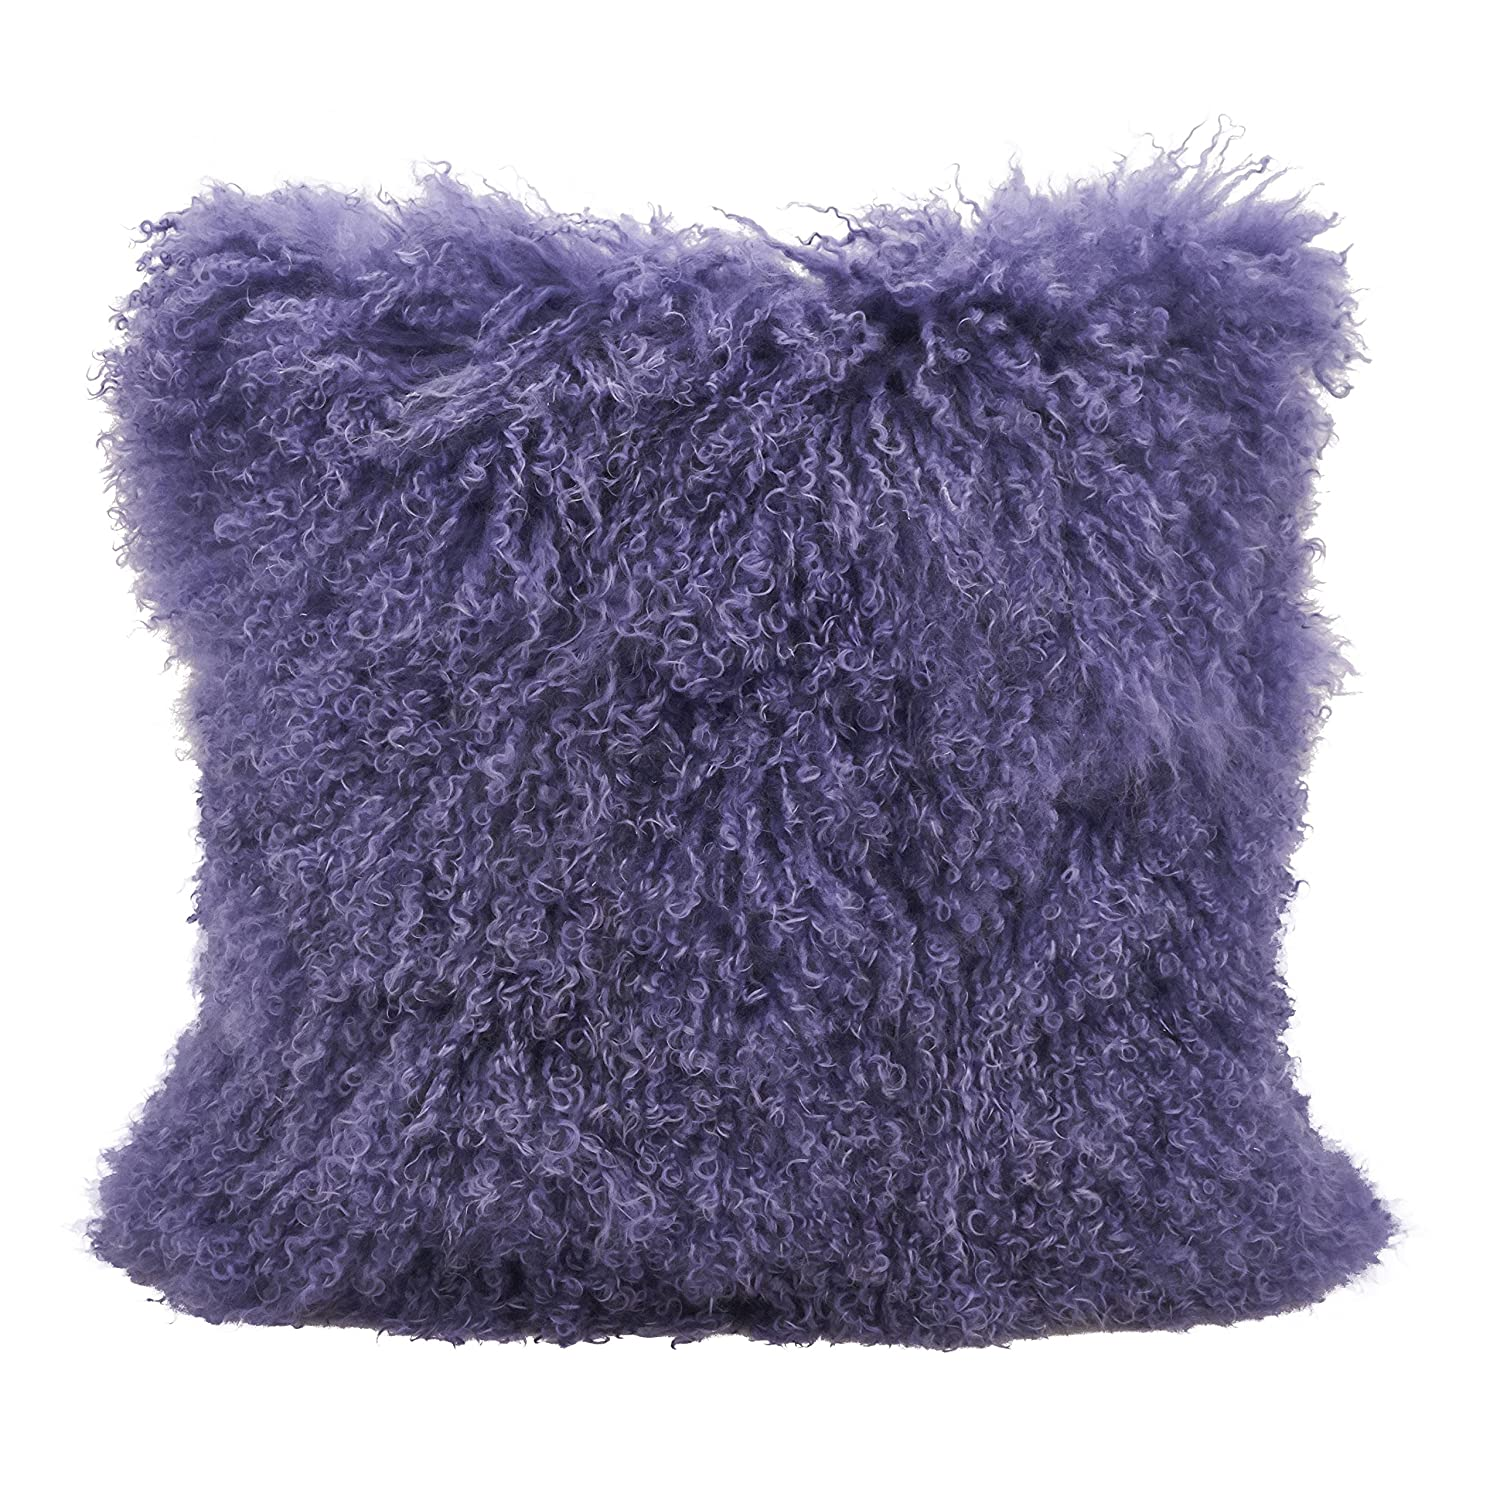 12 x 20 SARO LIFESTYLE 100/% Wool Mongolian Lamb Fur Throw Pillow with Poly Filling Fuchsia 12 x 20 3564.FU1220B